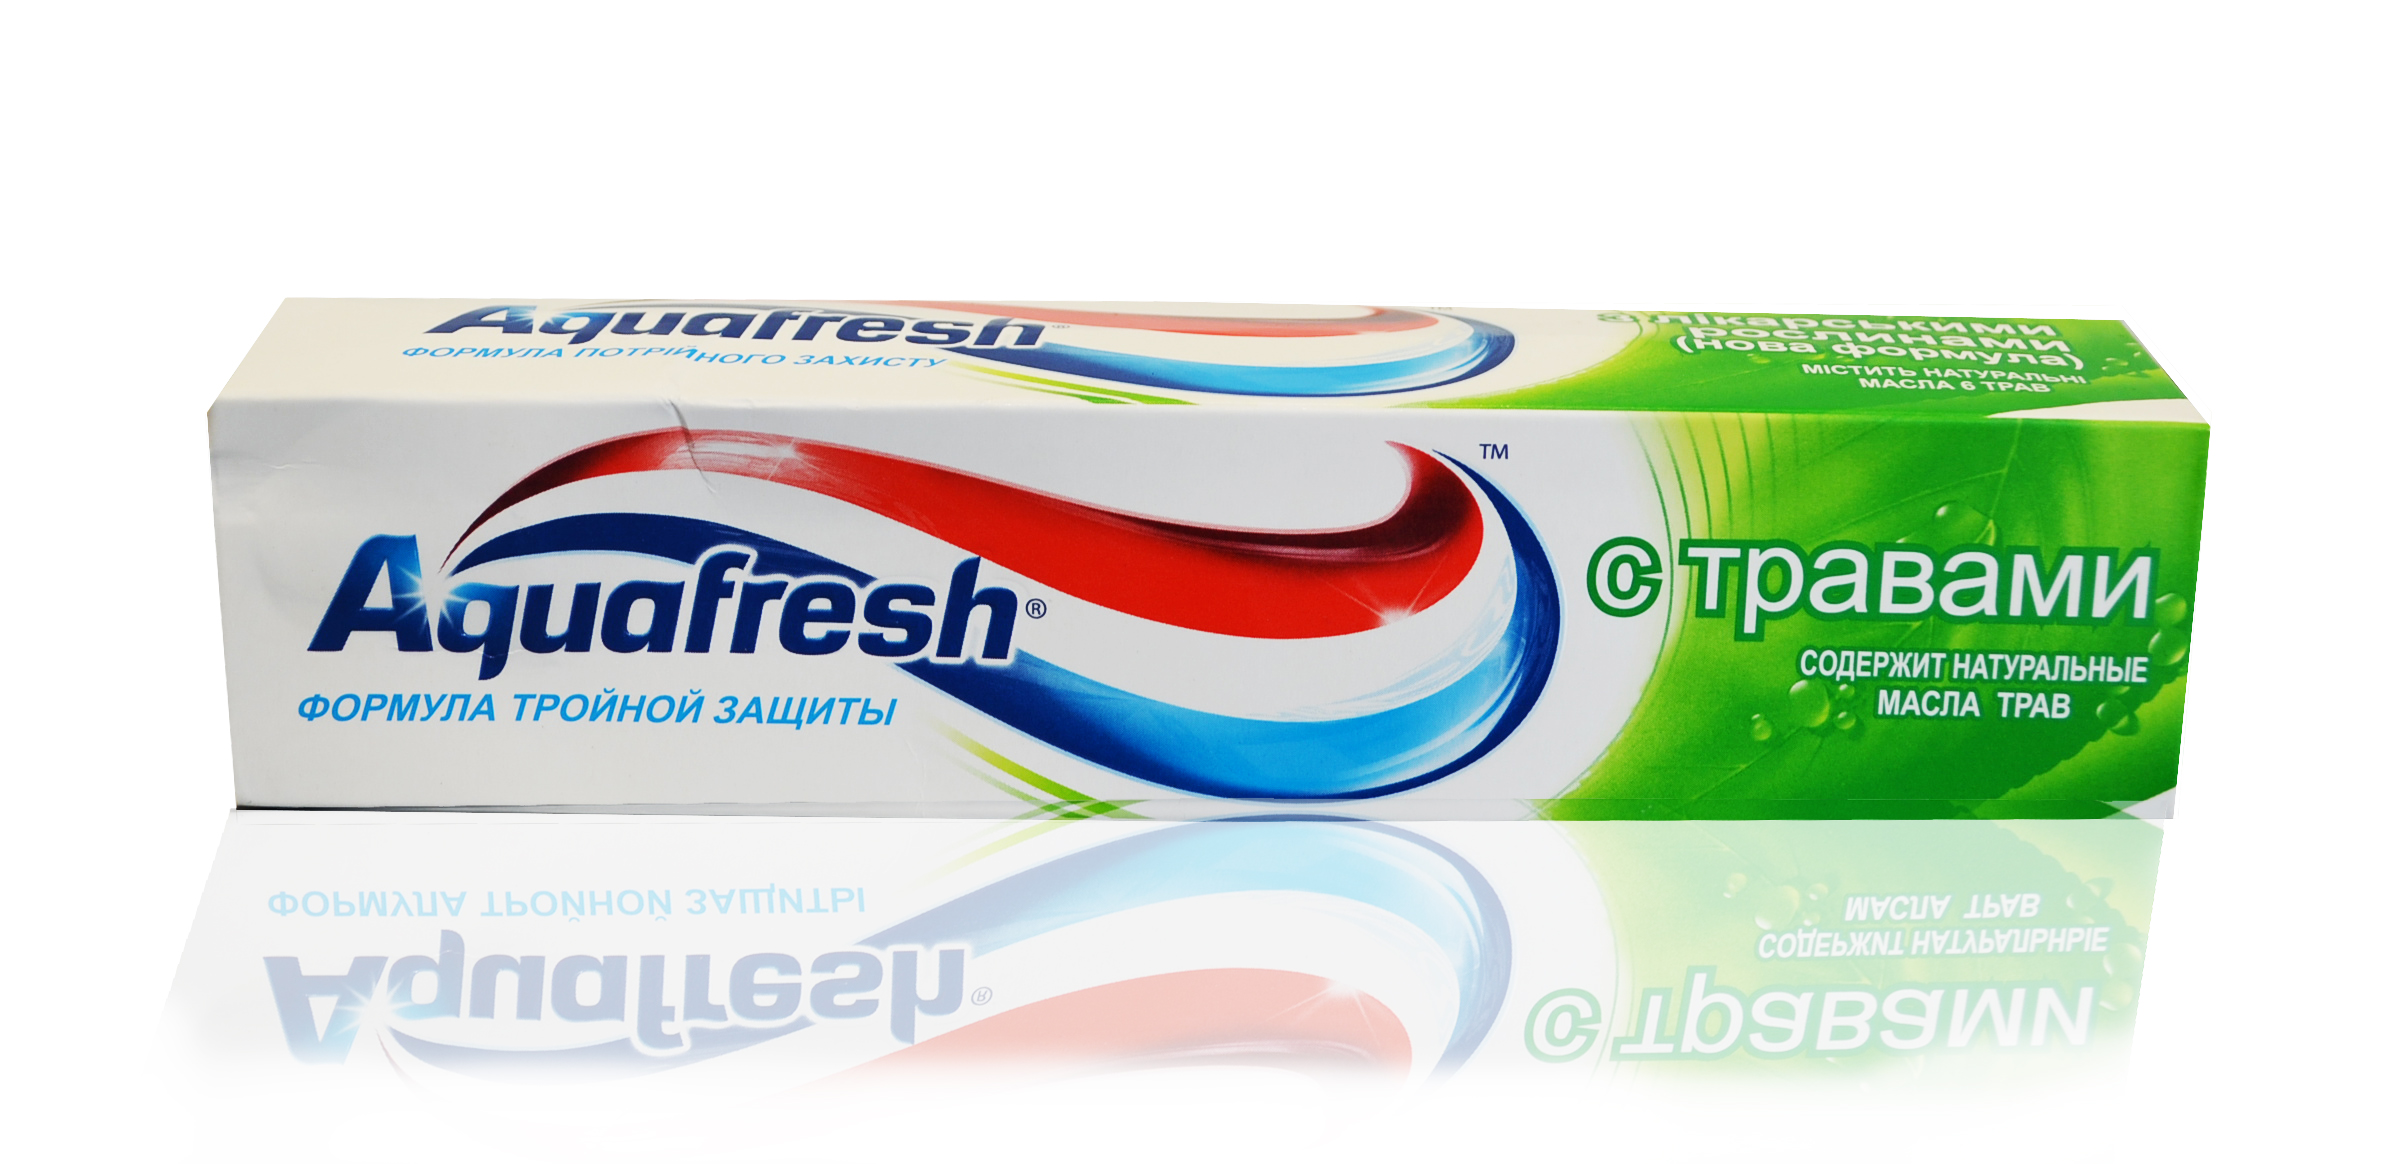 Aquafresh, pasta do zębów 100 ml Image